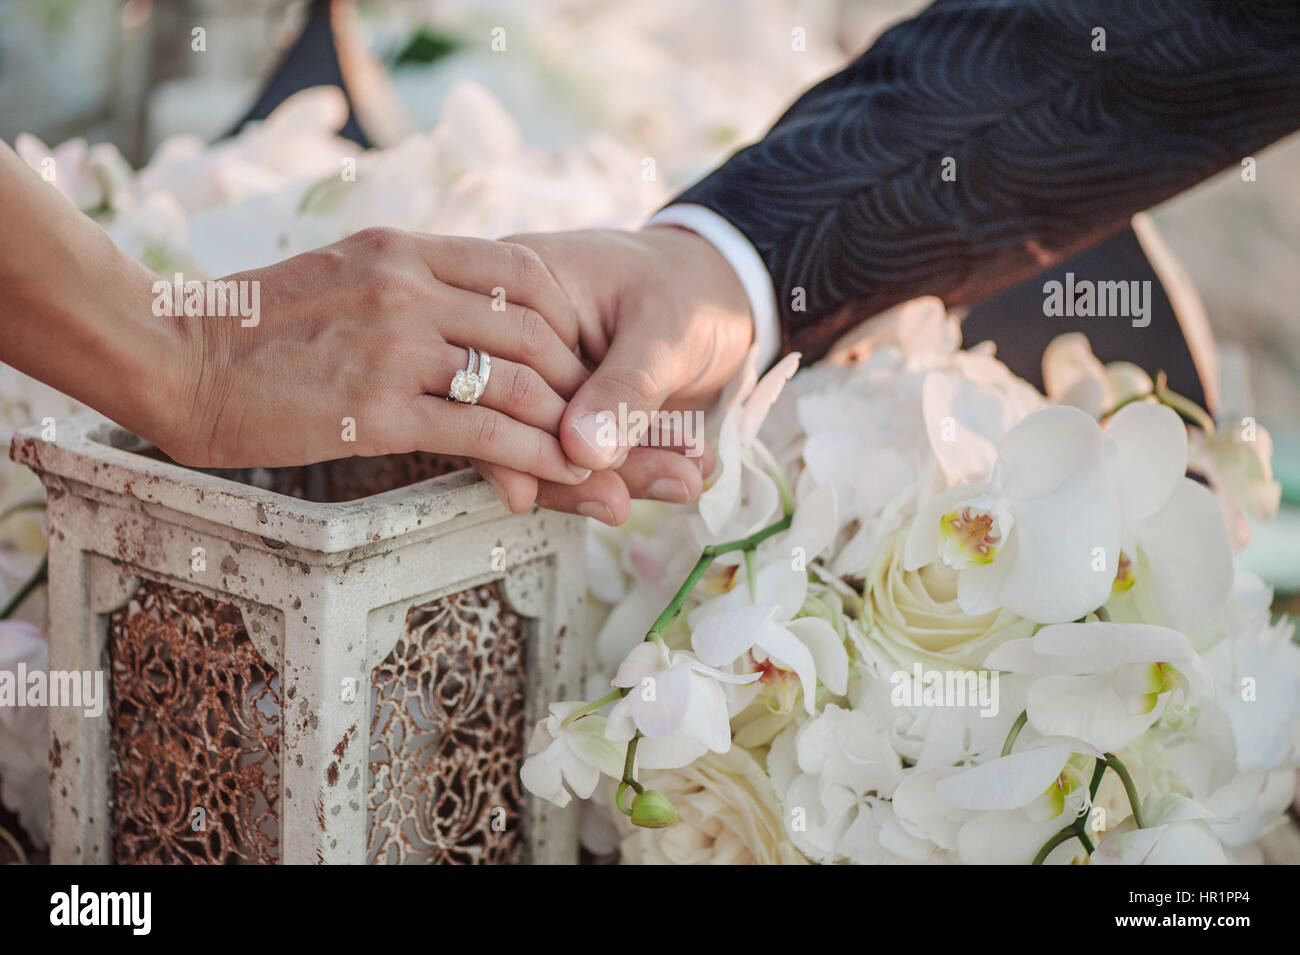 Newlyweds staying arm in arm on vintage background - Stock Image